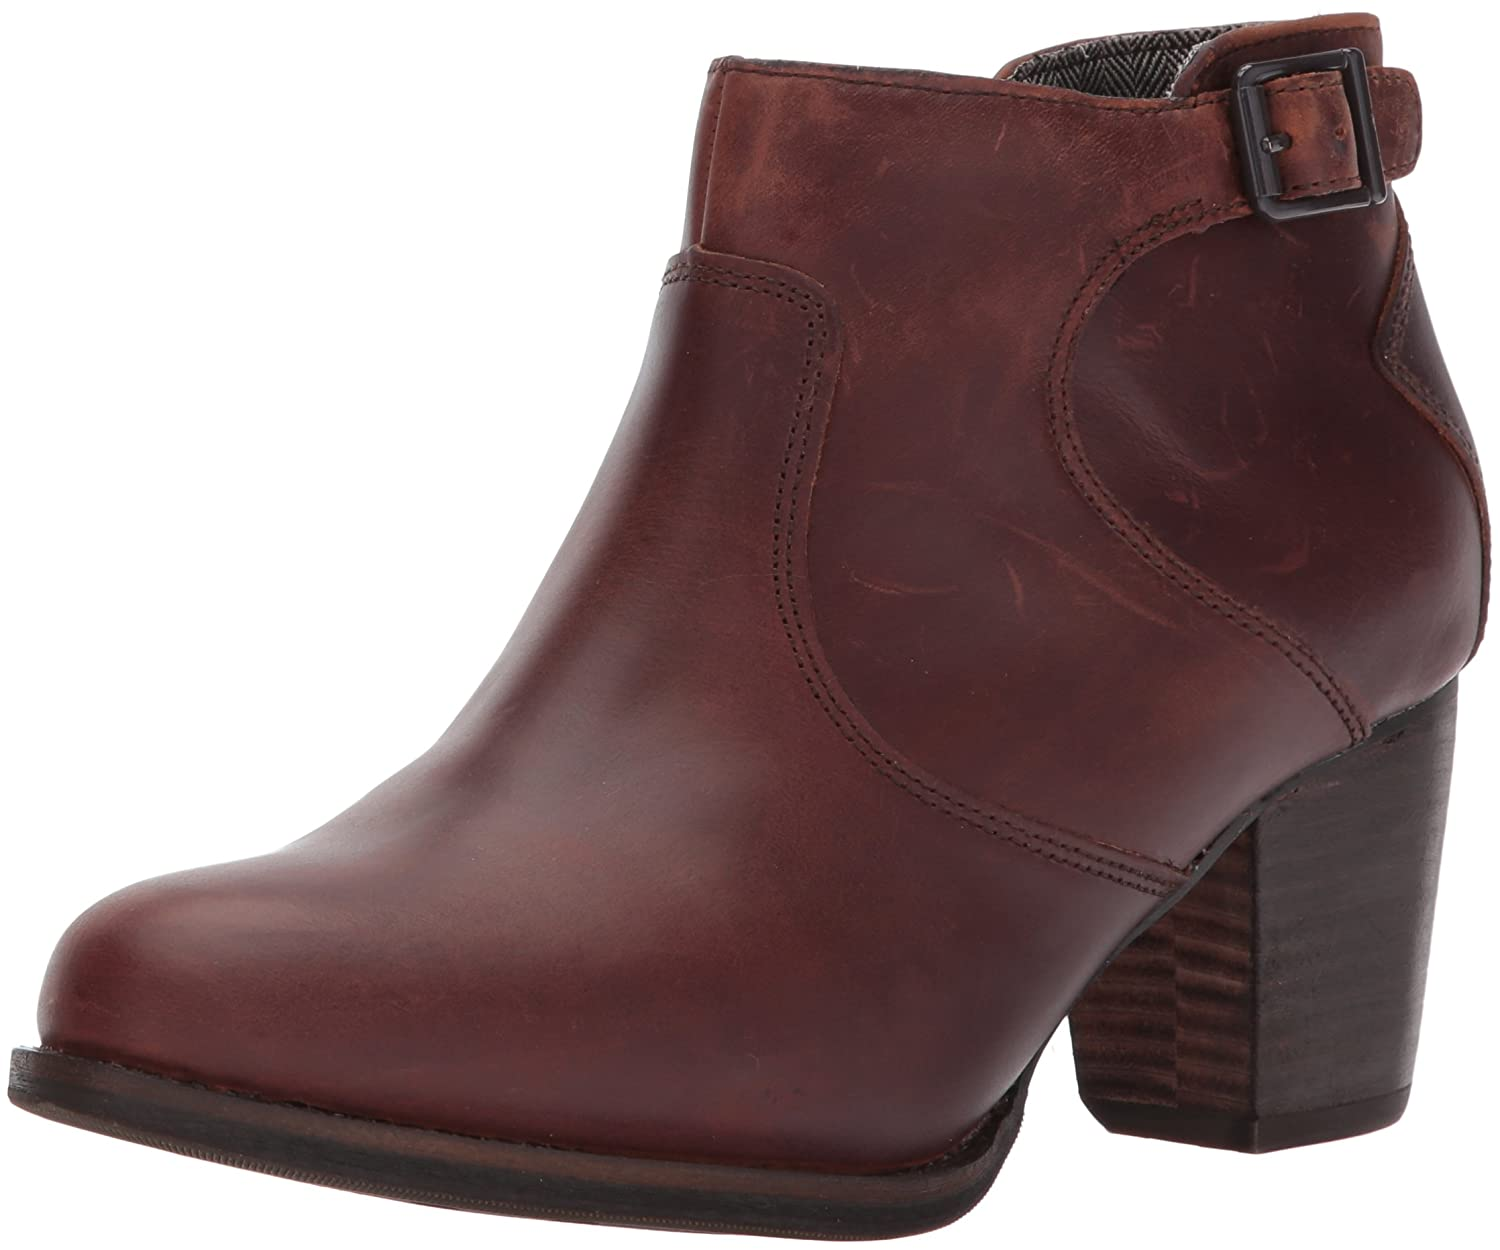 Caterpillar Women's Trestle Waterproof Leather Bootie with Side Zip Abd Stacked Heel Ankle Boot B01N4DPSGP 7.5 B(M) US|Tea / Tawny